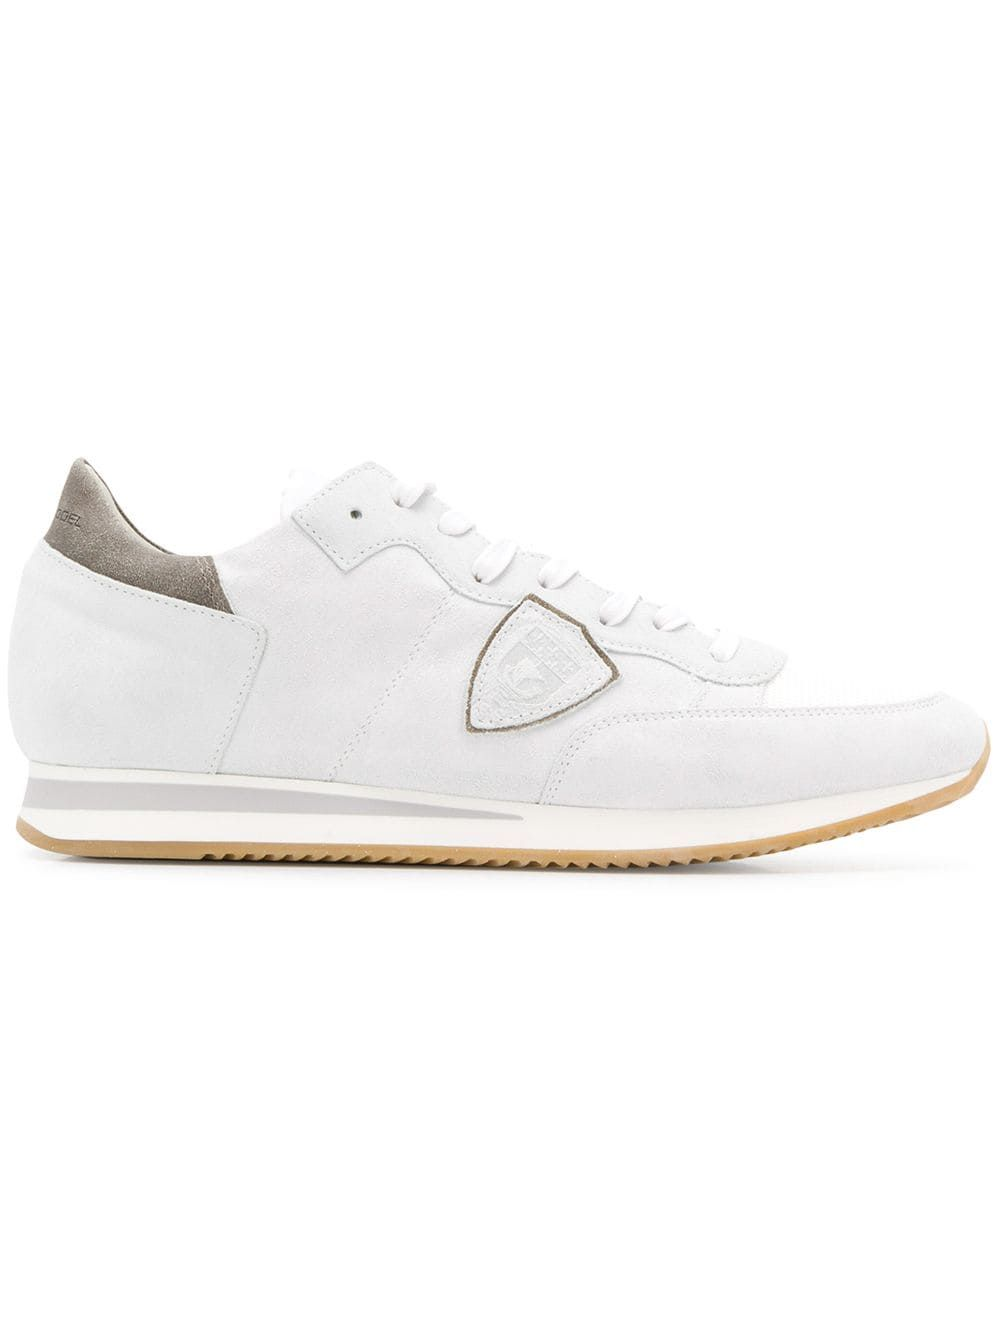 785e9436e317 PHILIPPE MODEL PHILIPPE MODEL SIDE LOGO PATCH SNEAKERS - WHITE.   philippemodel  shoes